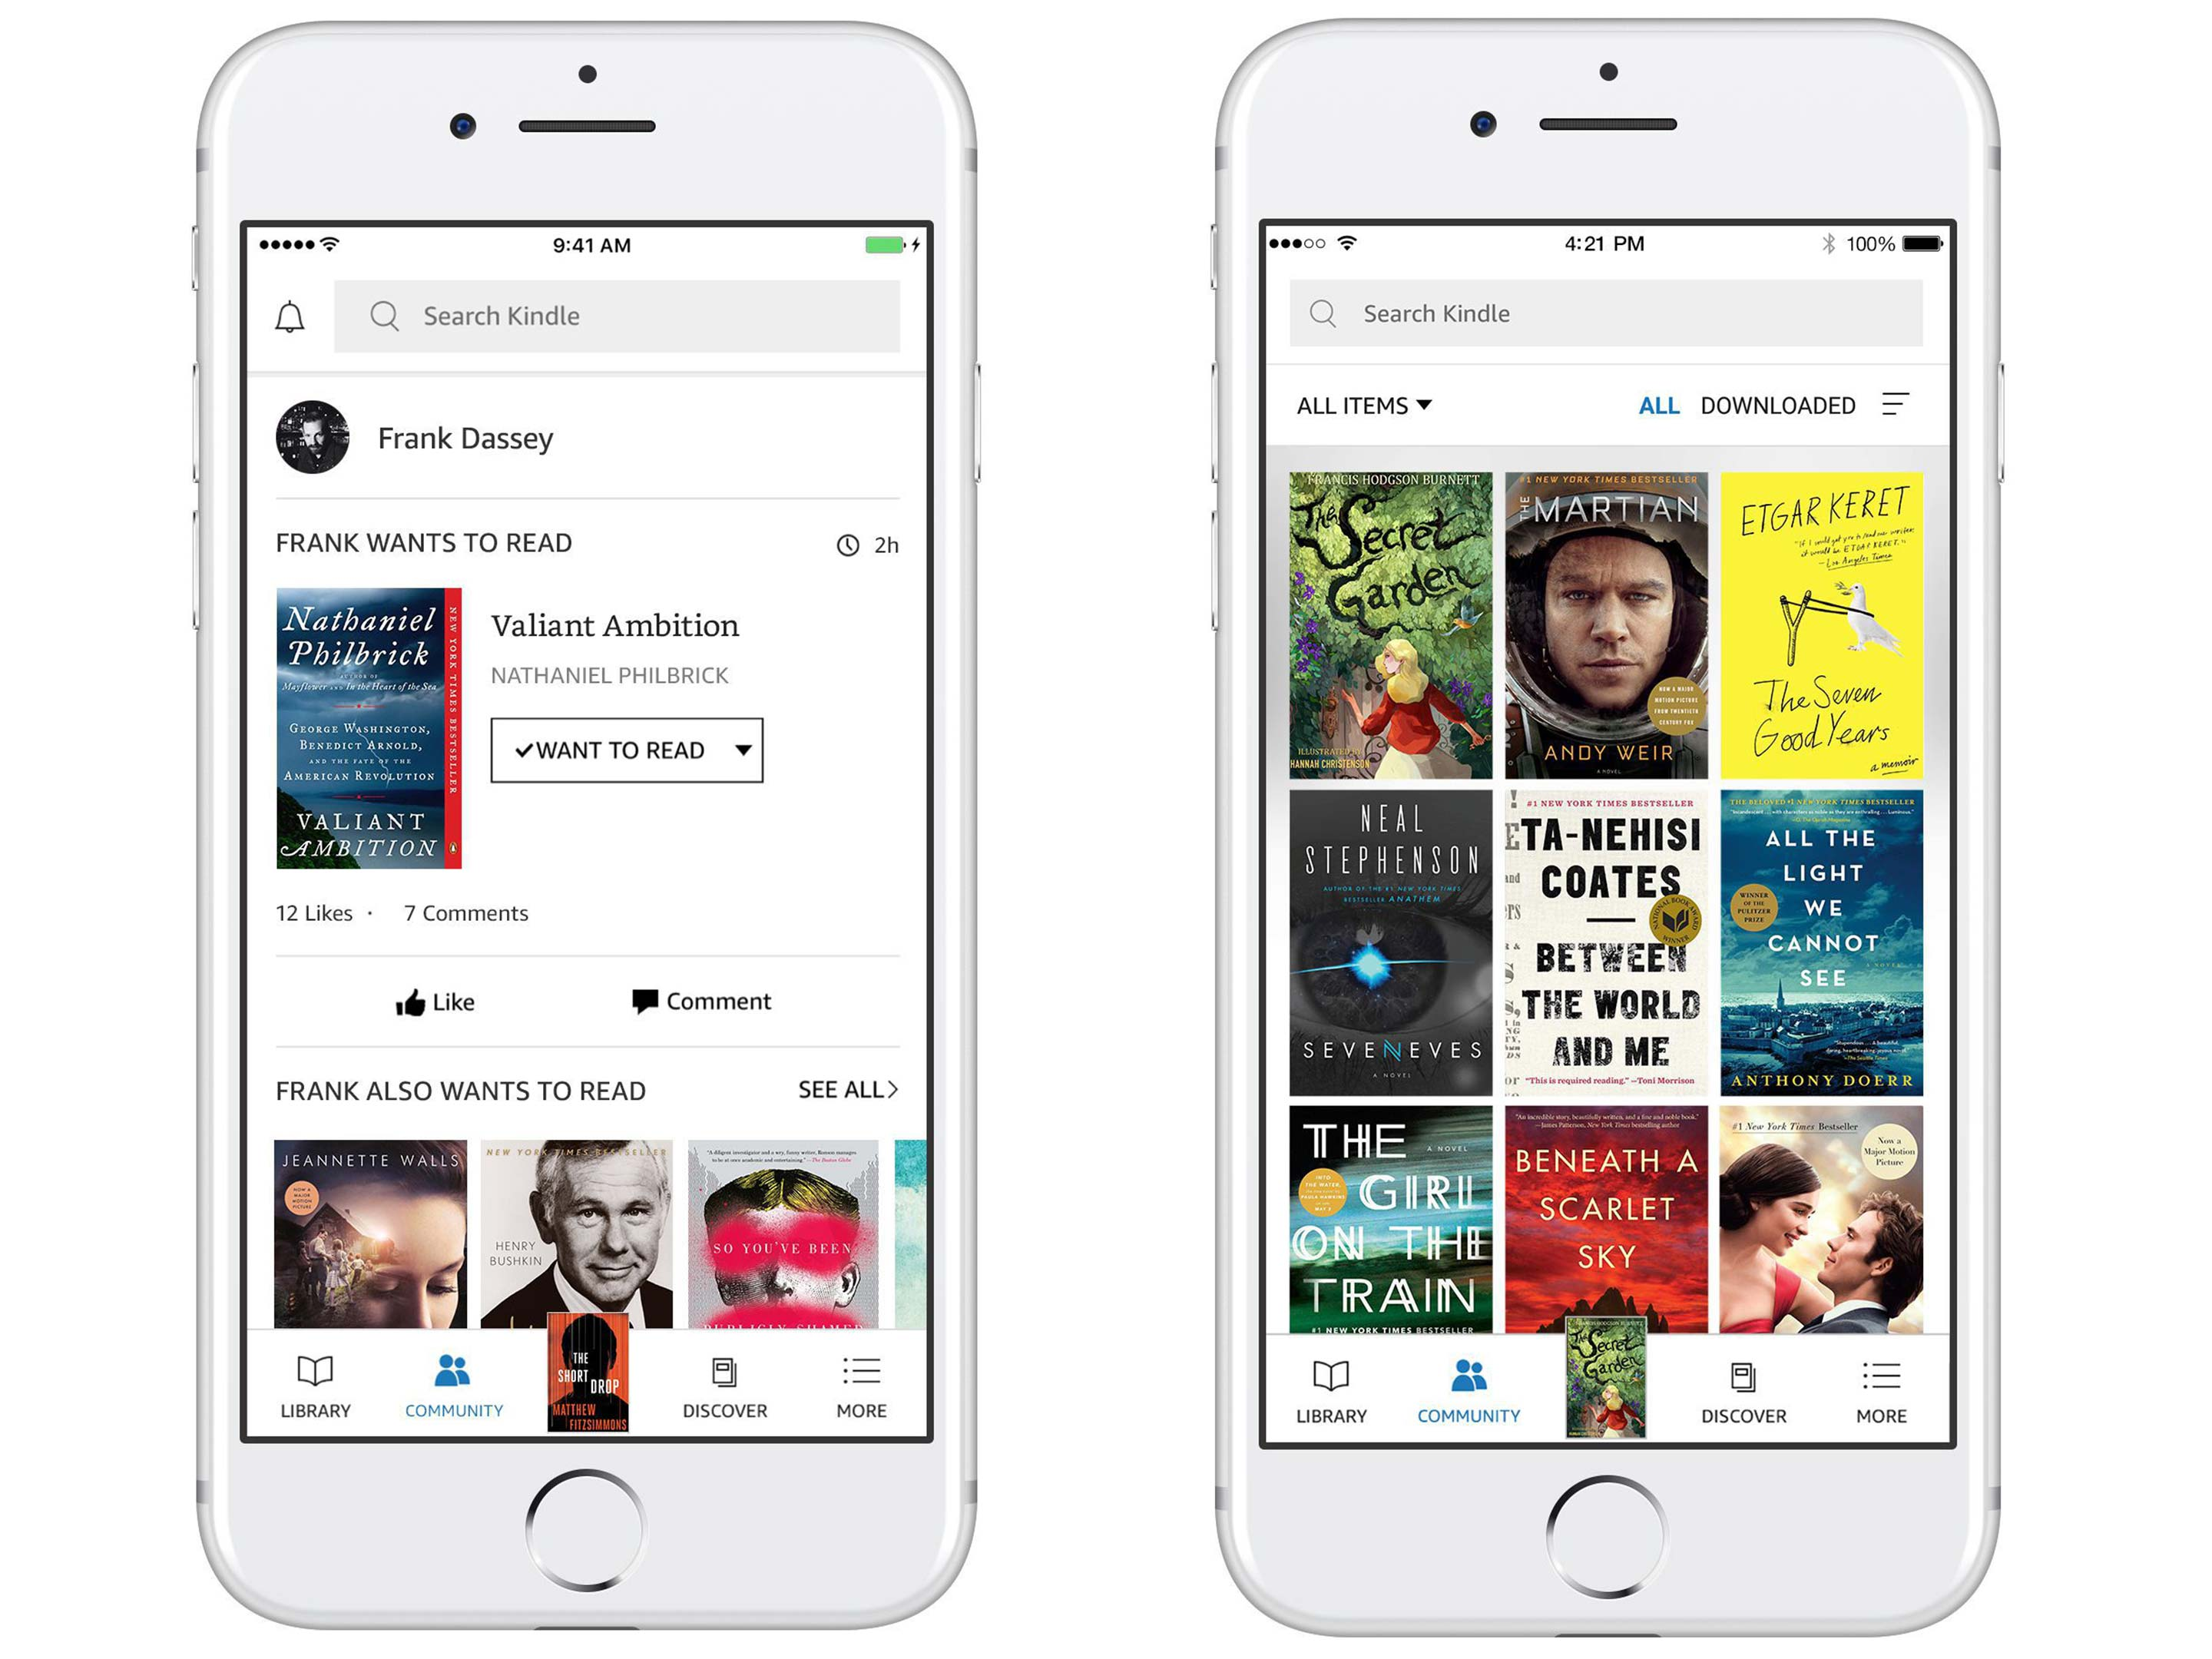 Amazon's Kindle app gets design overhaul, new Goodreads ... - photo#35